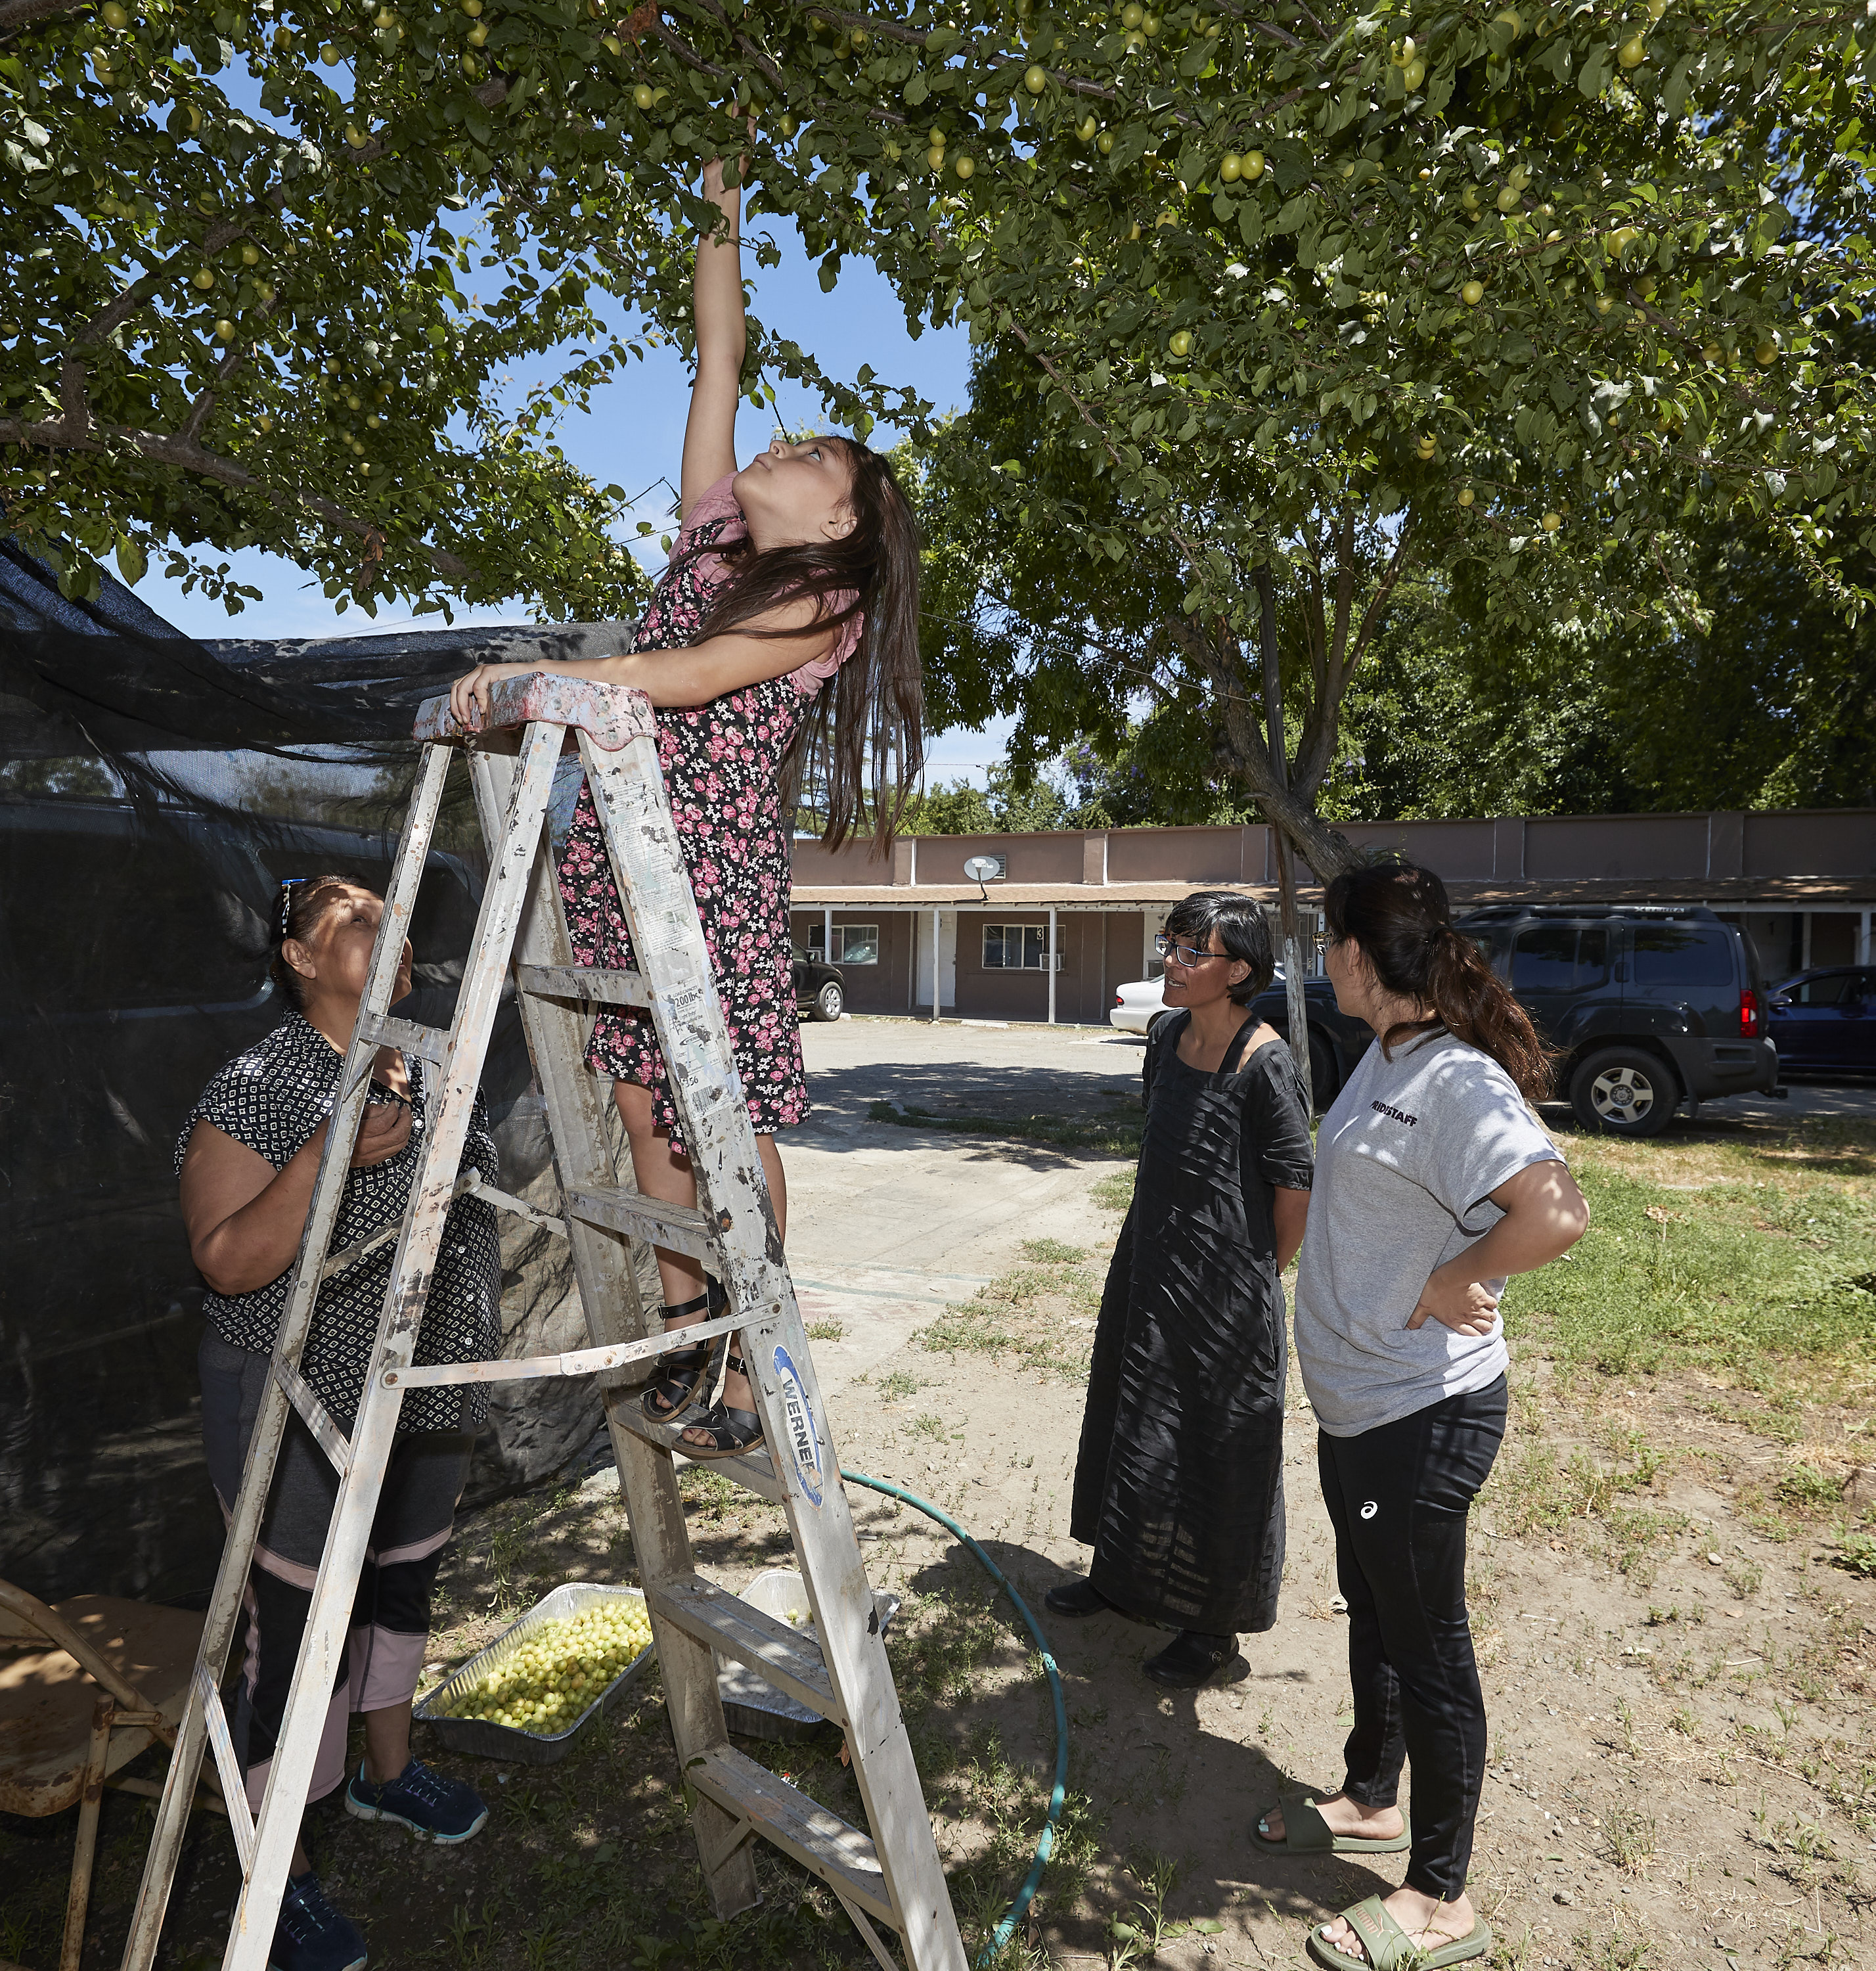 girl standing on ladder to pick fruit while three other woman watches her